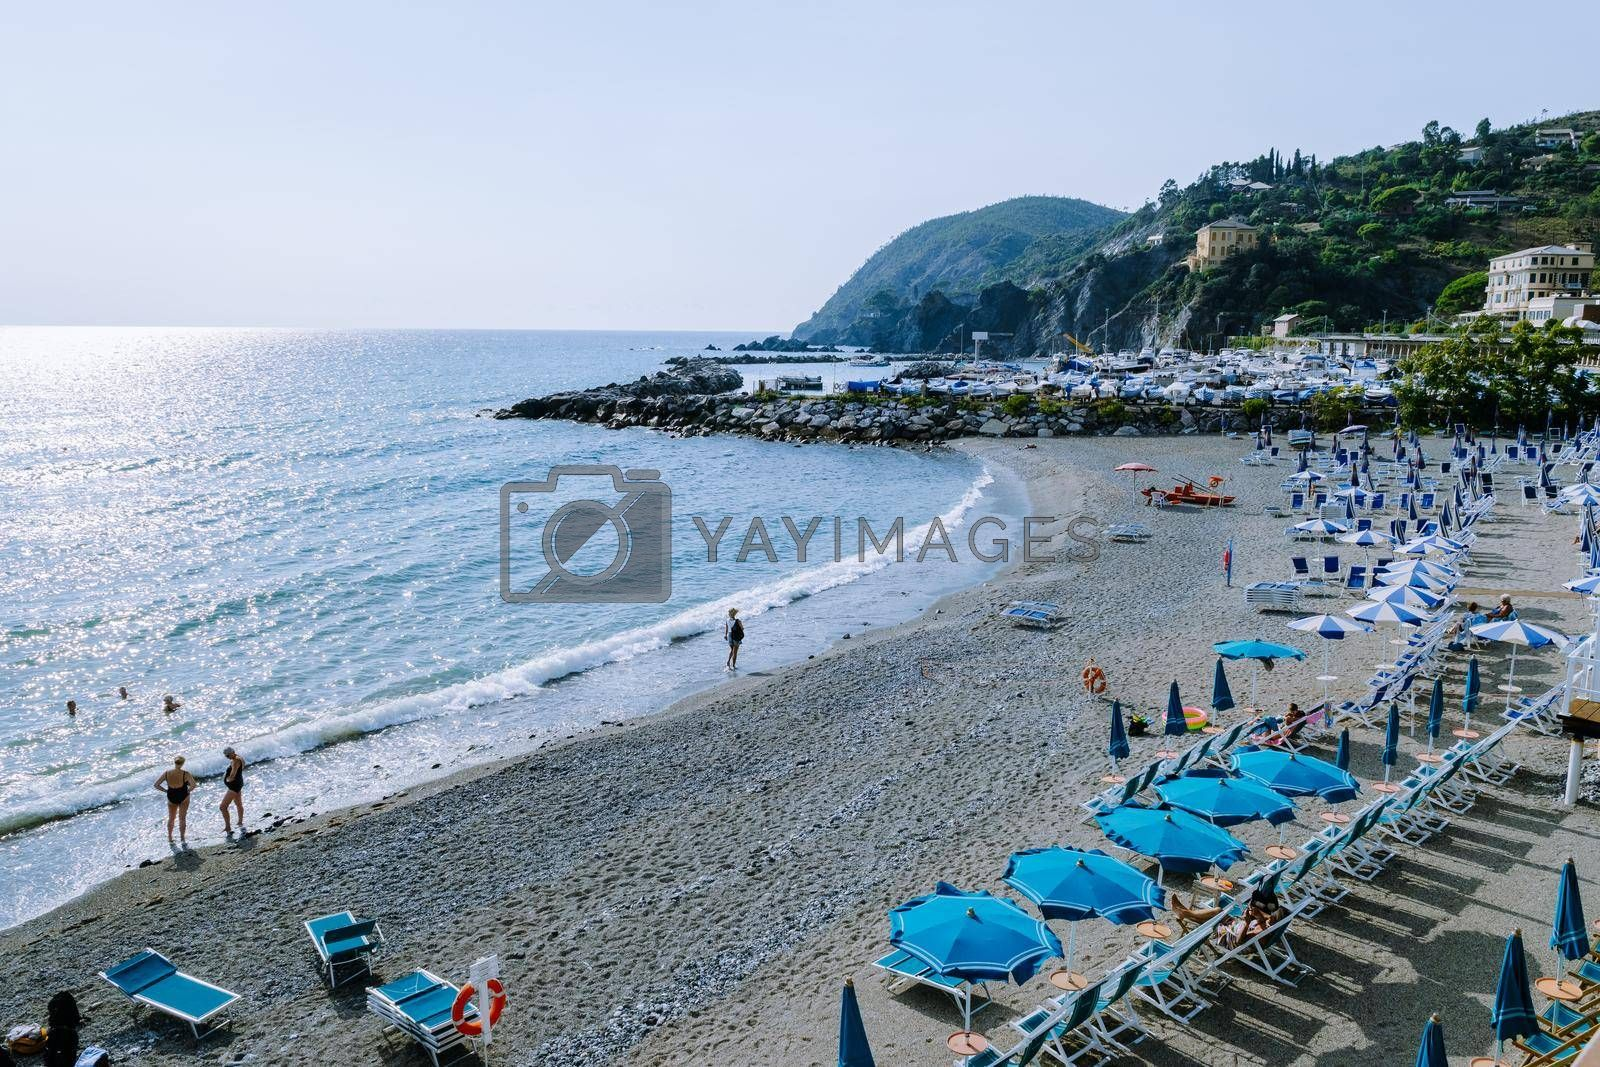 Levanto Cinque Terre colorful village Italy, colorful beach with an umbrella during the summer holiday. Levanto Cinque Terre Italy September 2018